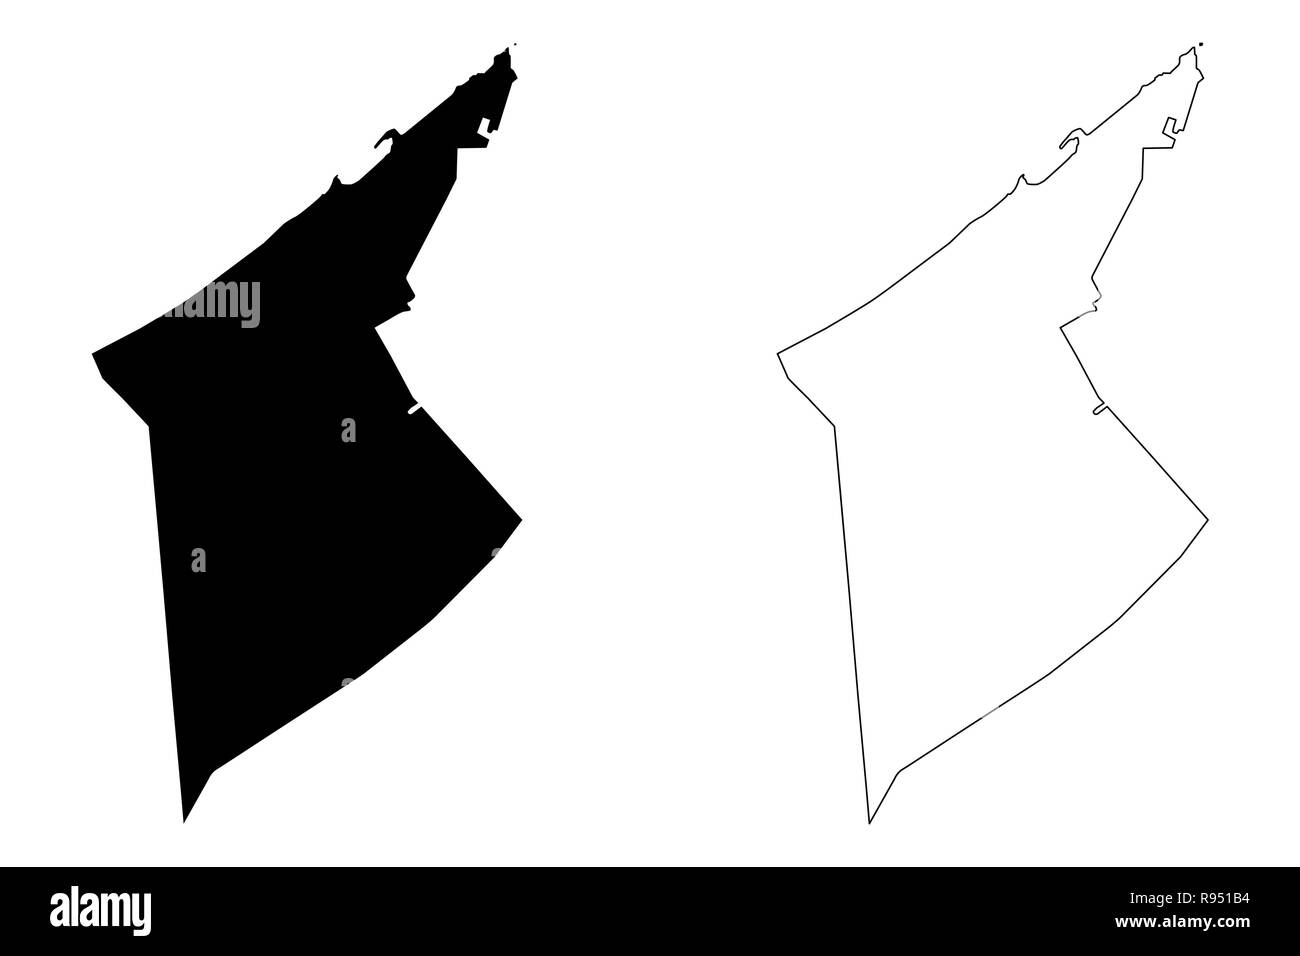 Alexandria Governorate (Governorates of Egypt, Arab Republic of Egypt) map vector illustration, scribble sketch Alexandria map - Stock Image